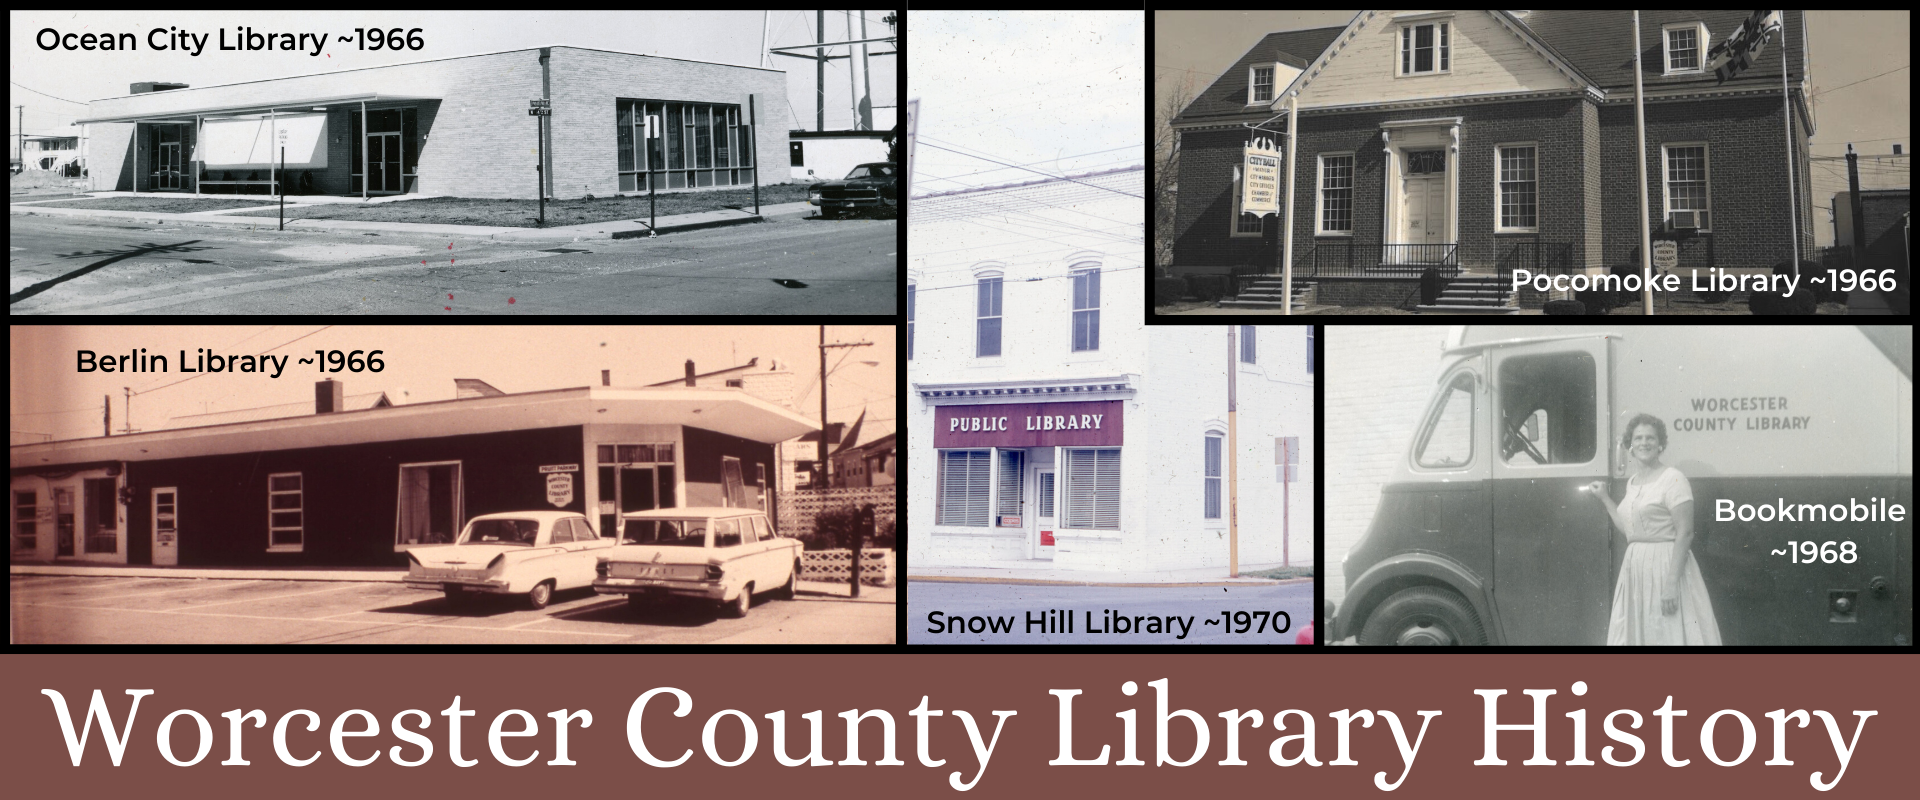 Worcester County Library History